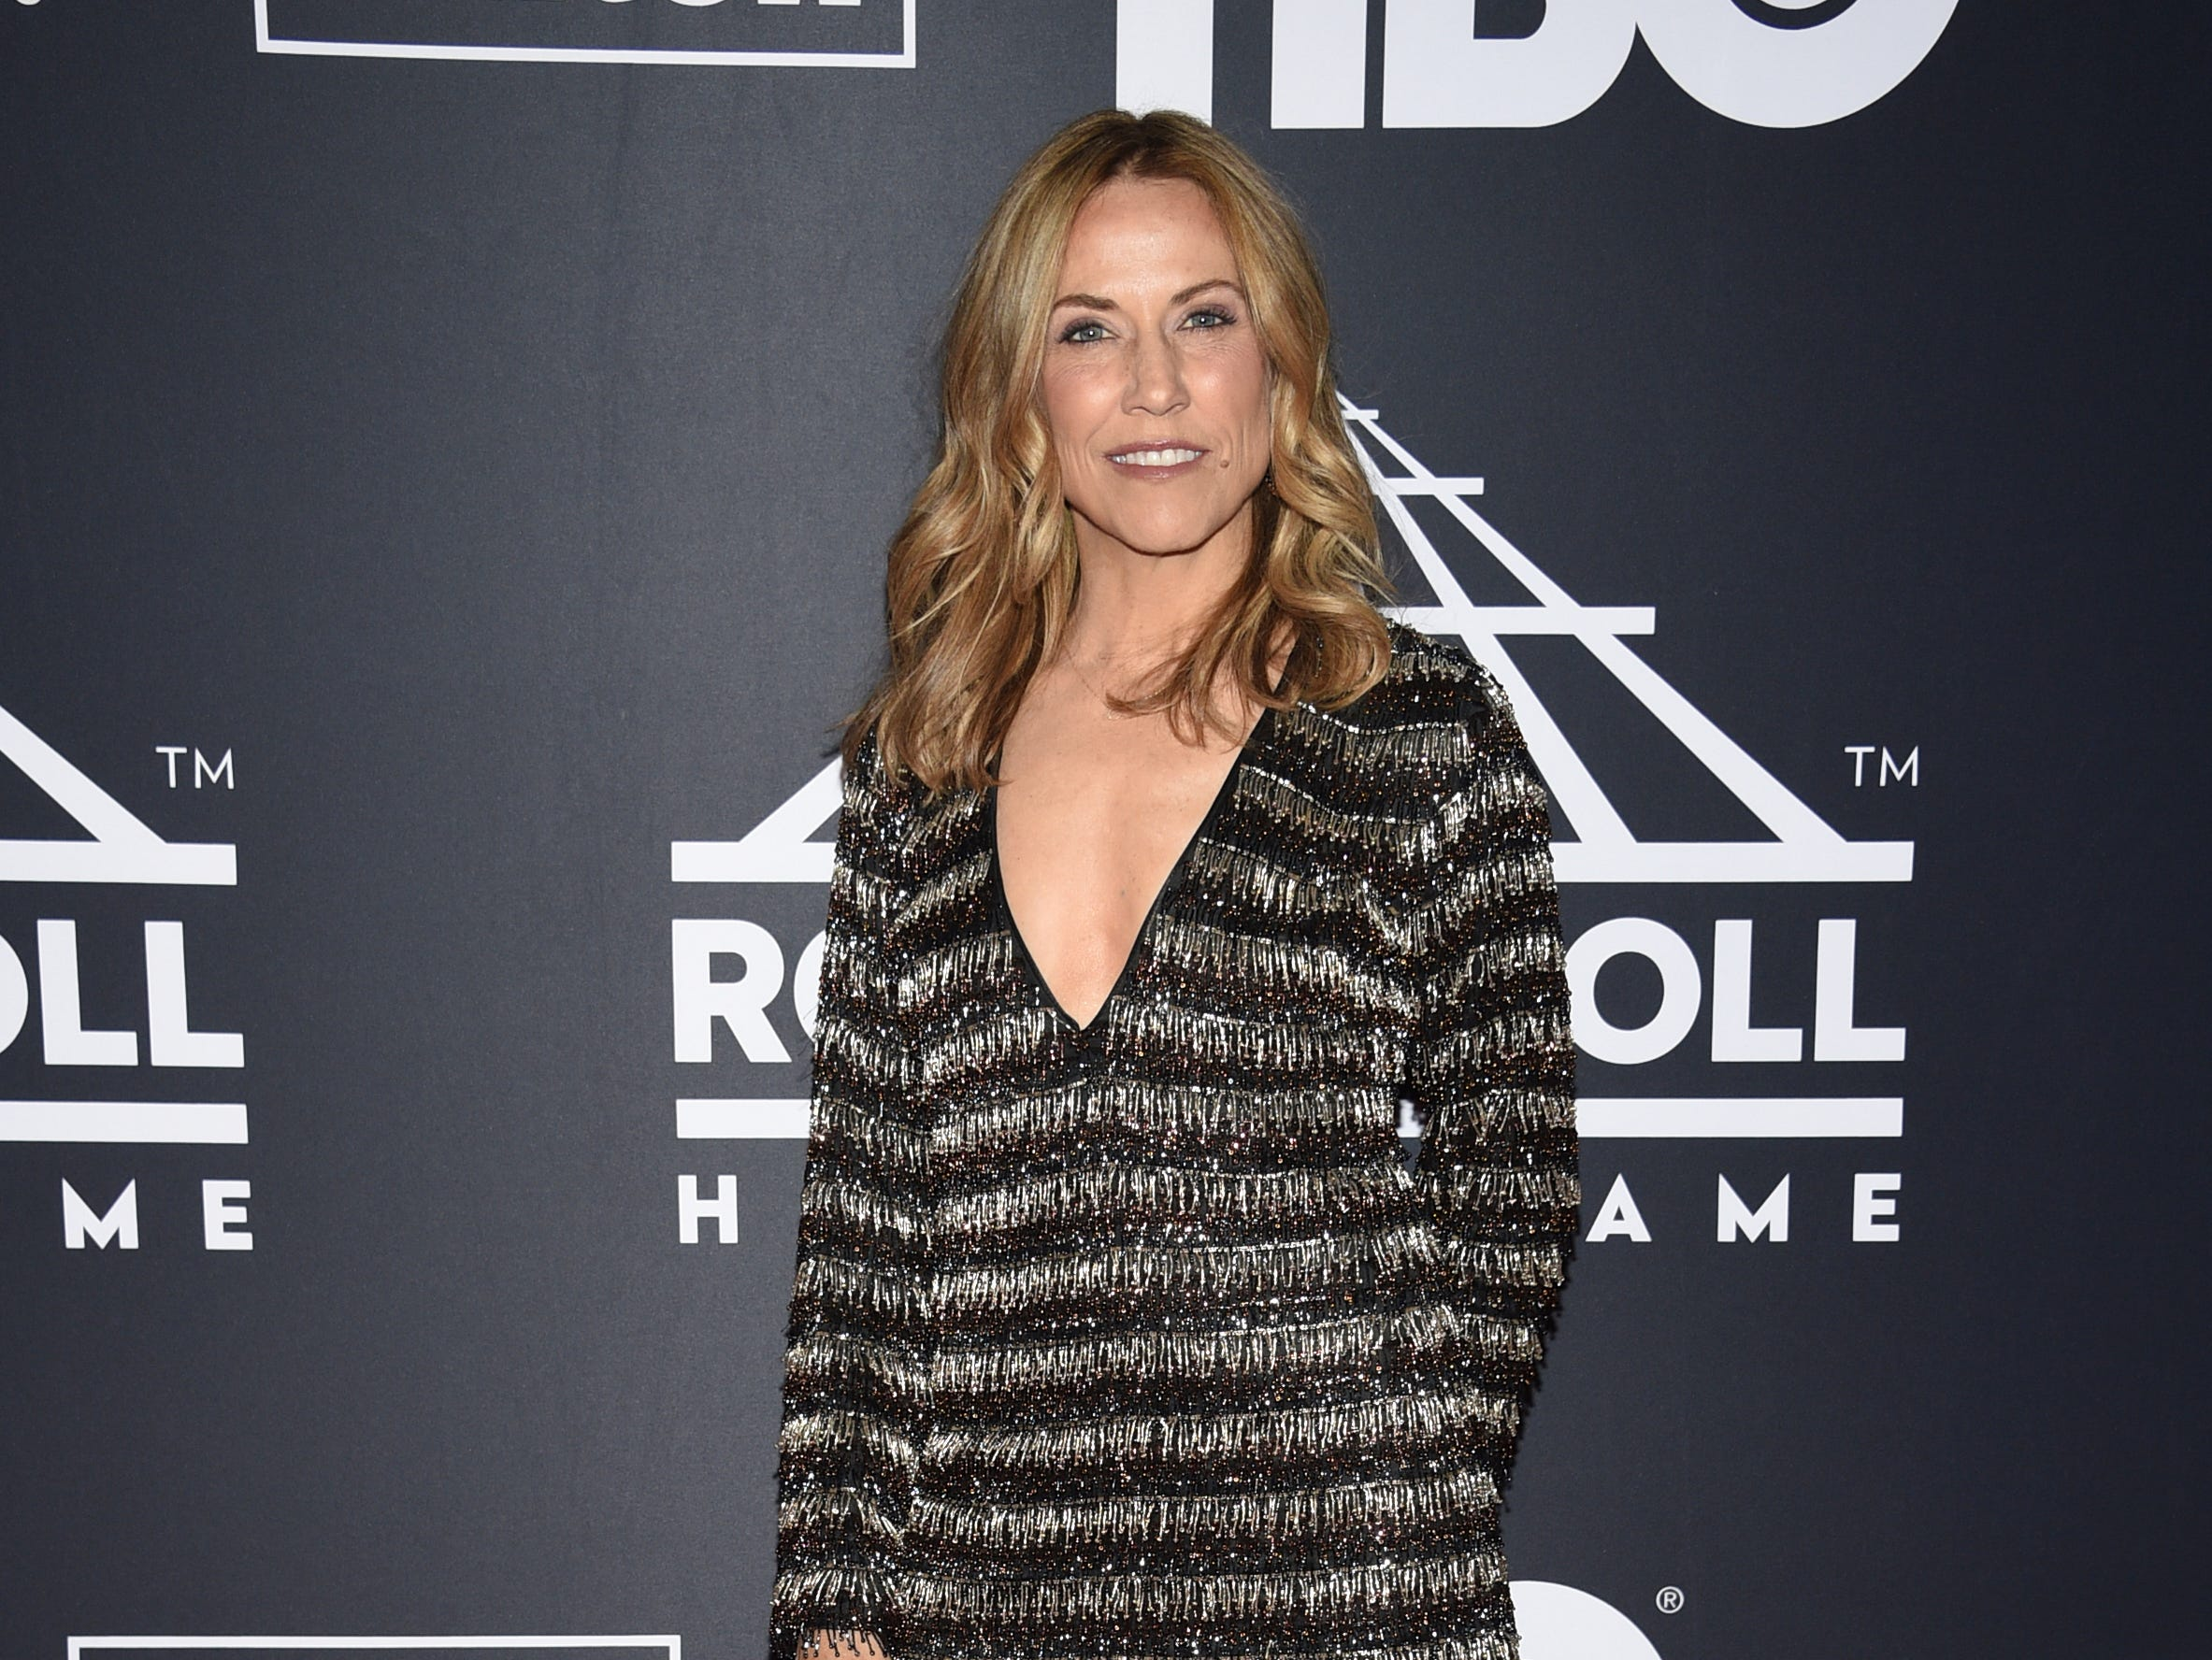 Sheryl Crow arrives at the Rock & Roll Hall of Fame induction ceremony at the Barclays Center on Friday, March 29, 2019, in New York. (Photo by Evan Agostini/Invision/AP) ORG XMIT: NYPM120